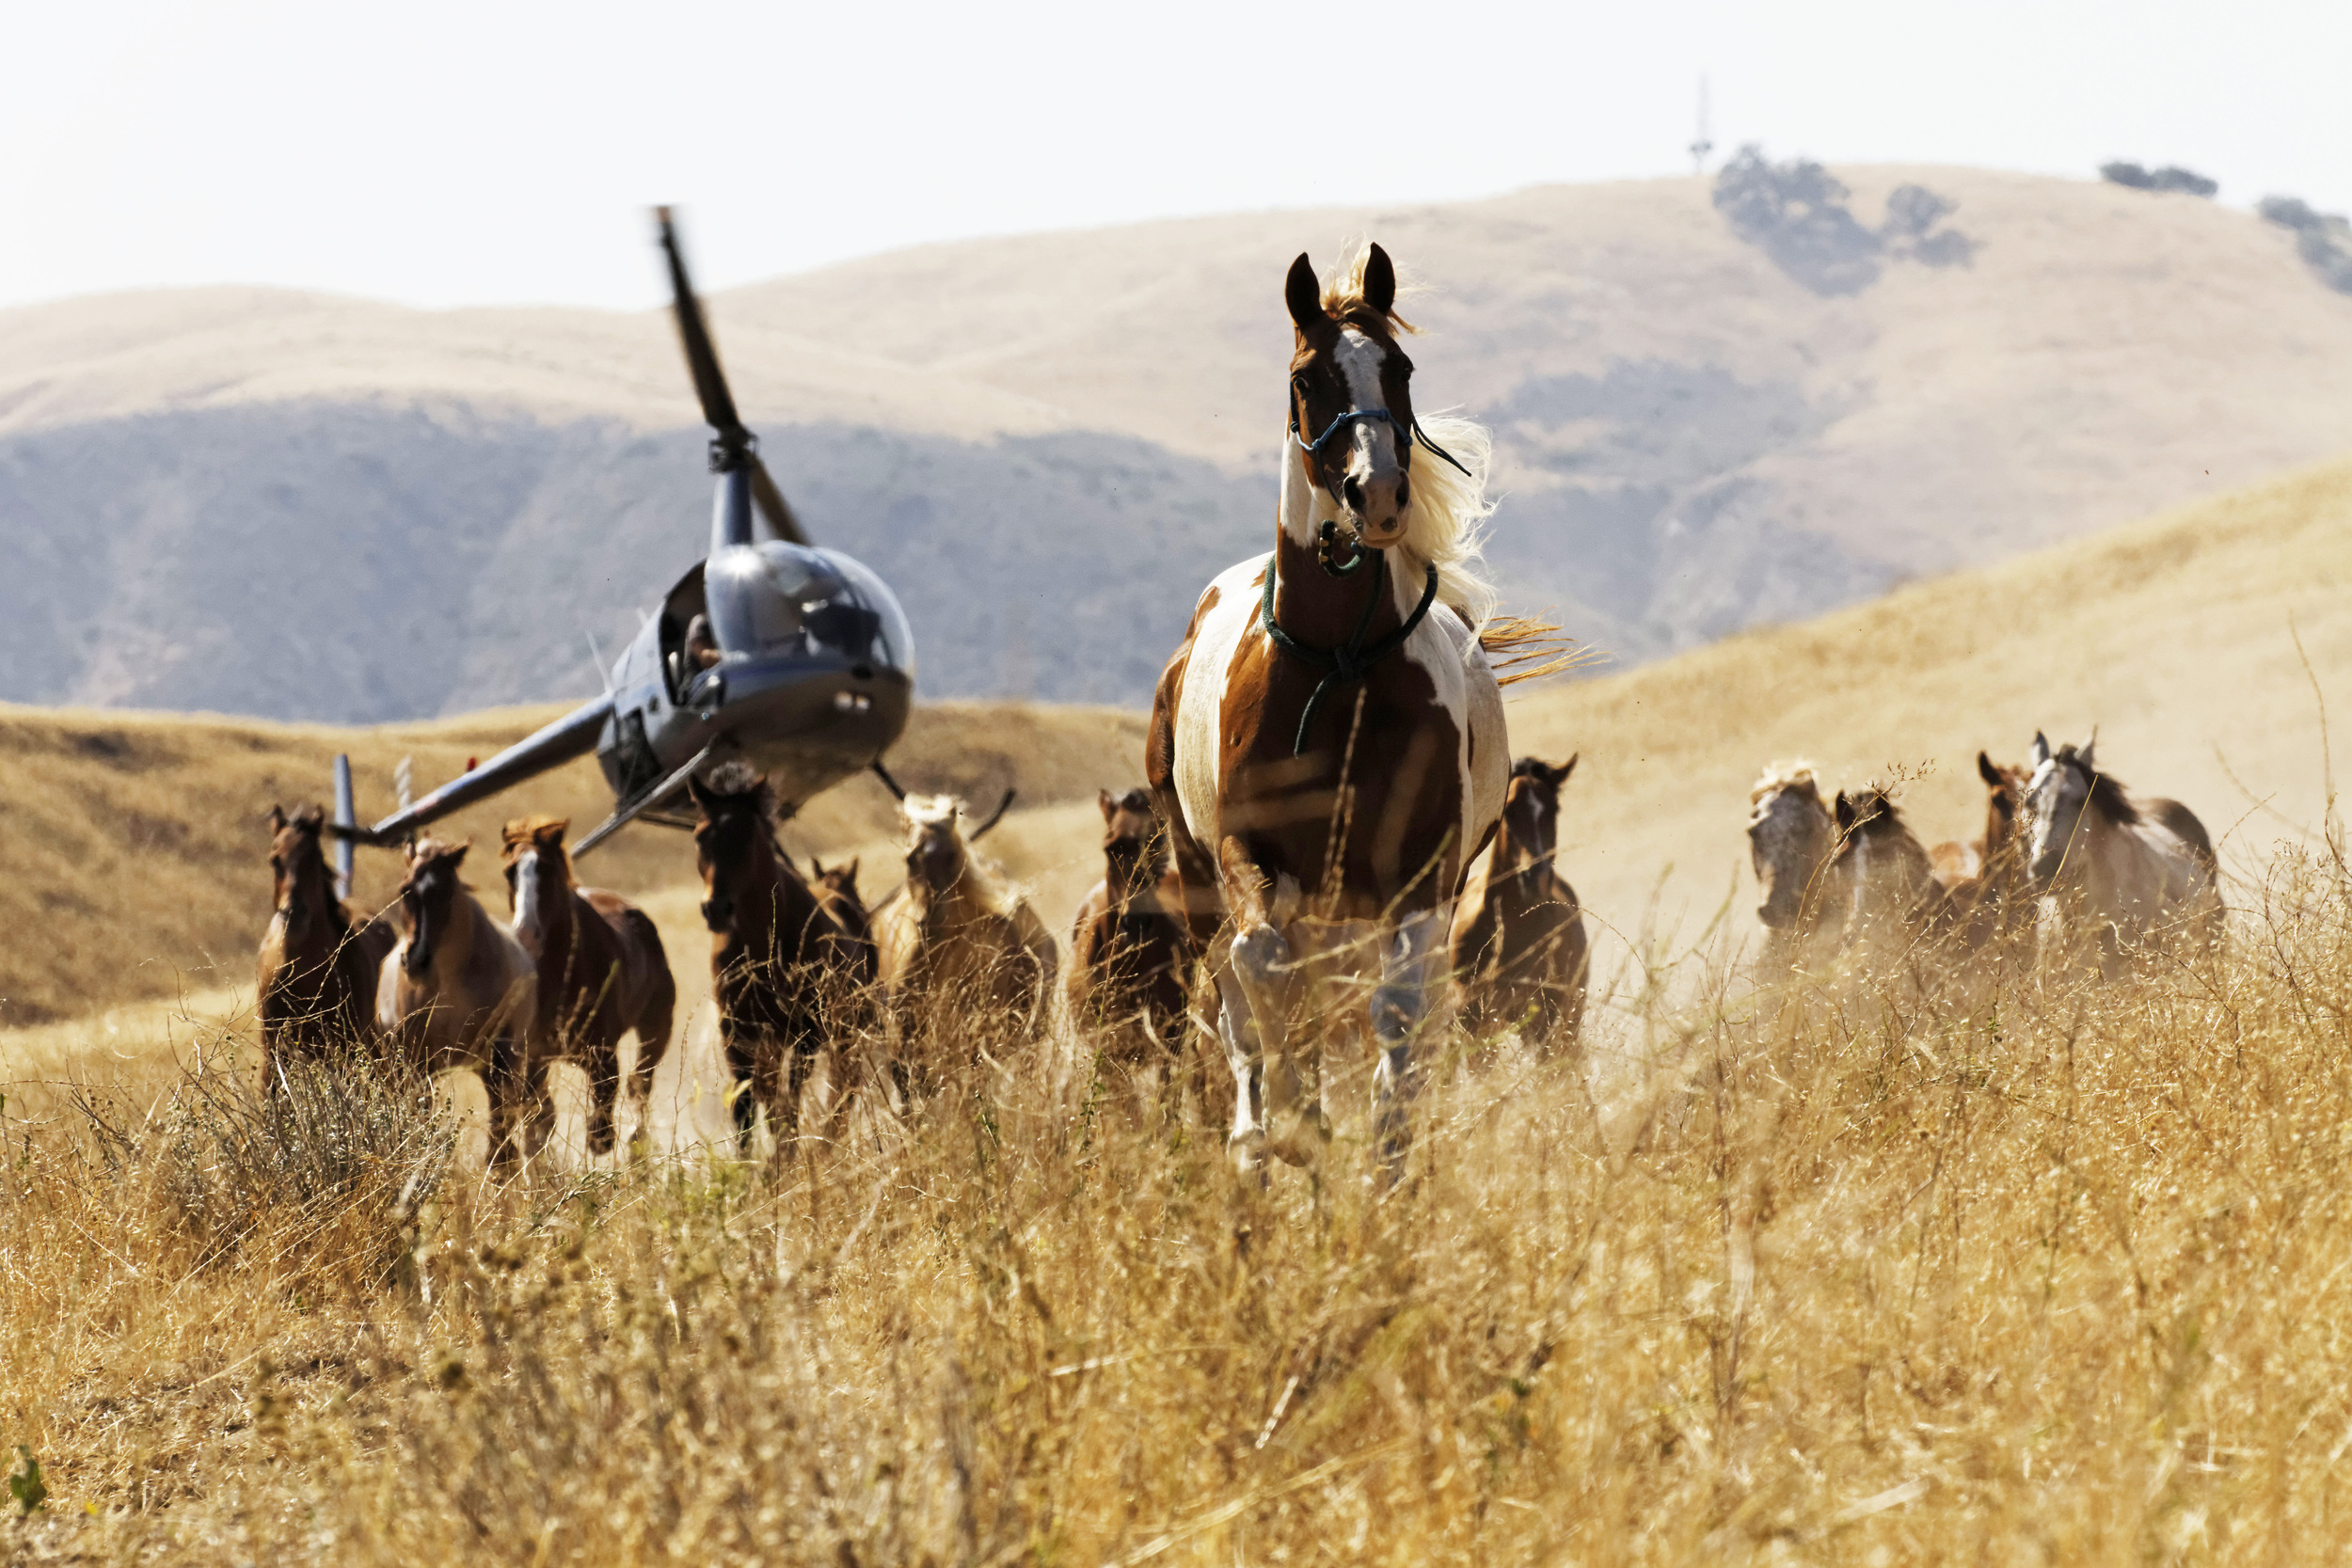 WILD HORSES is featured in TFF'14's Short Film Competition